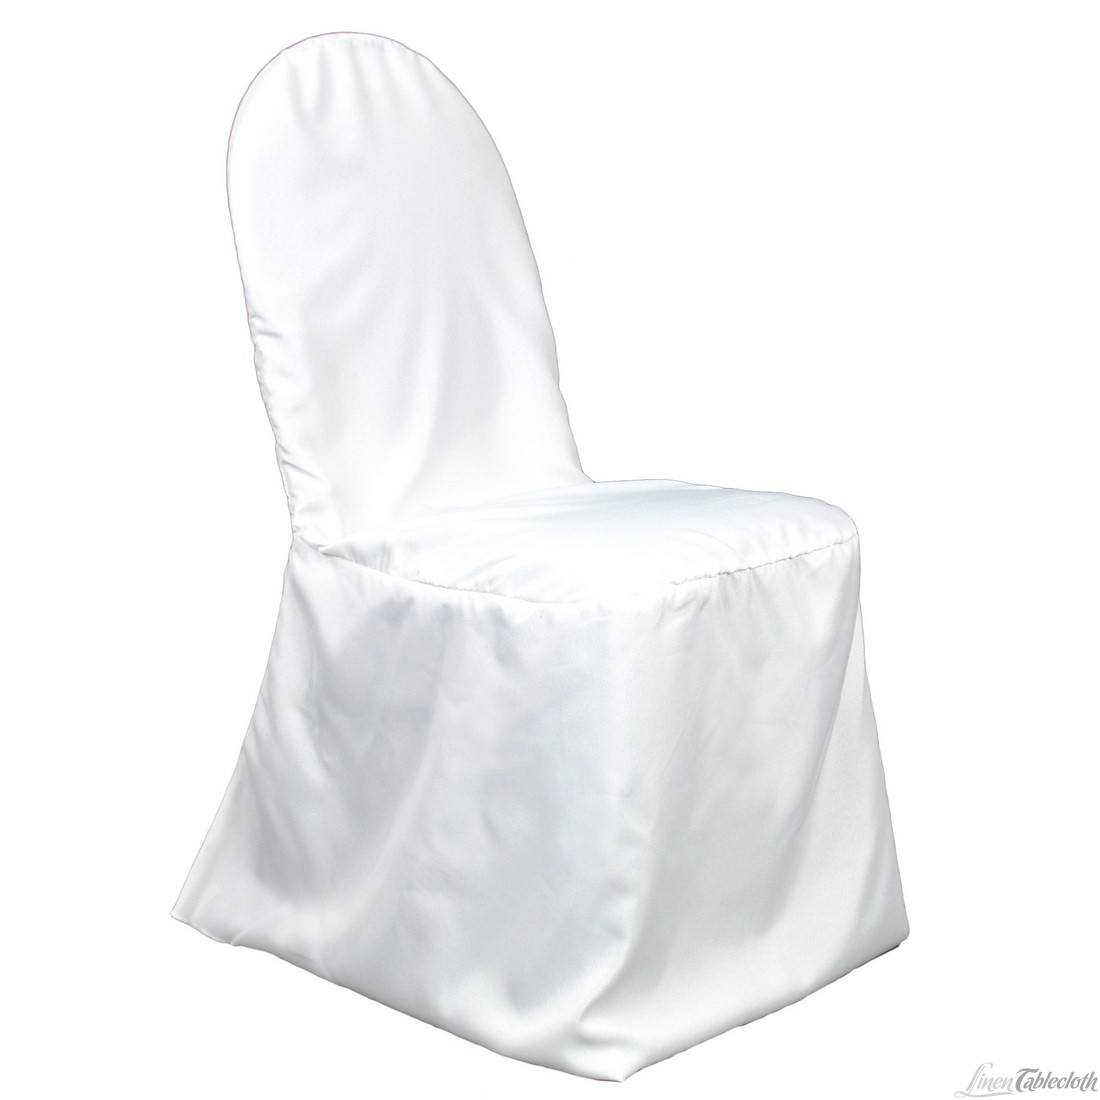 White Chair Sashes Bean Bag Ikea Chelsea Gets Married Covers And Overlays